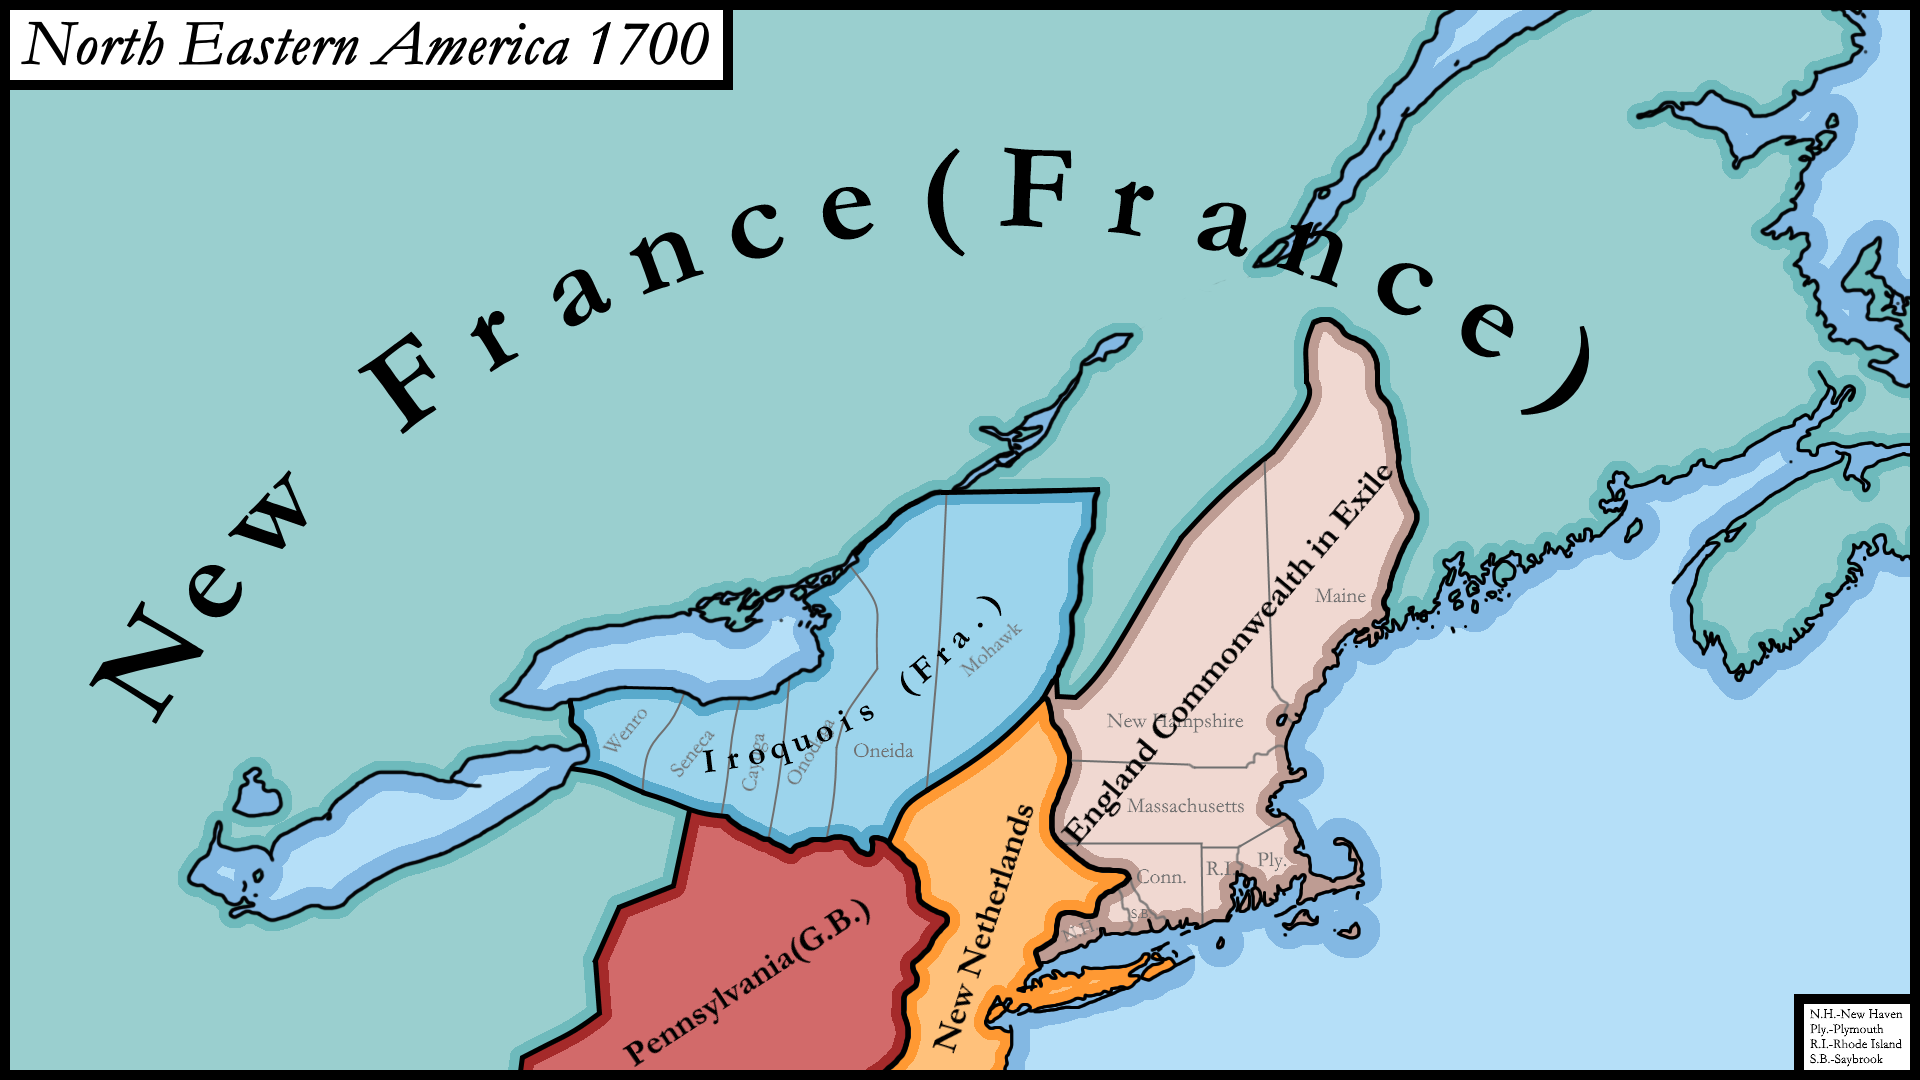 North Eastern America 1700.png